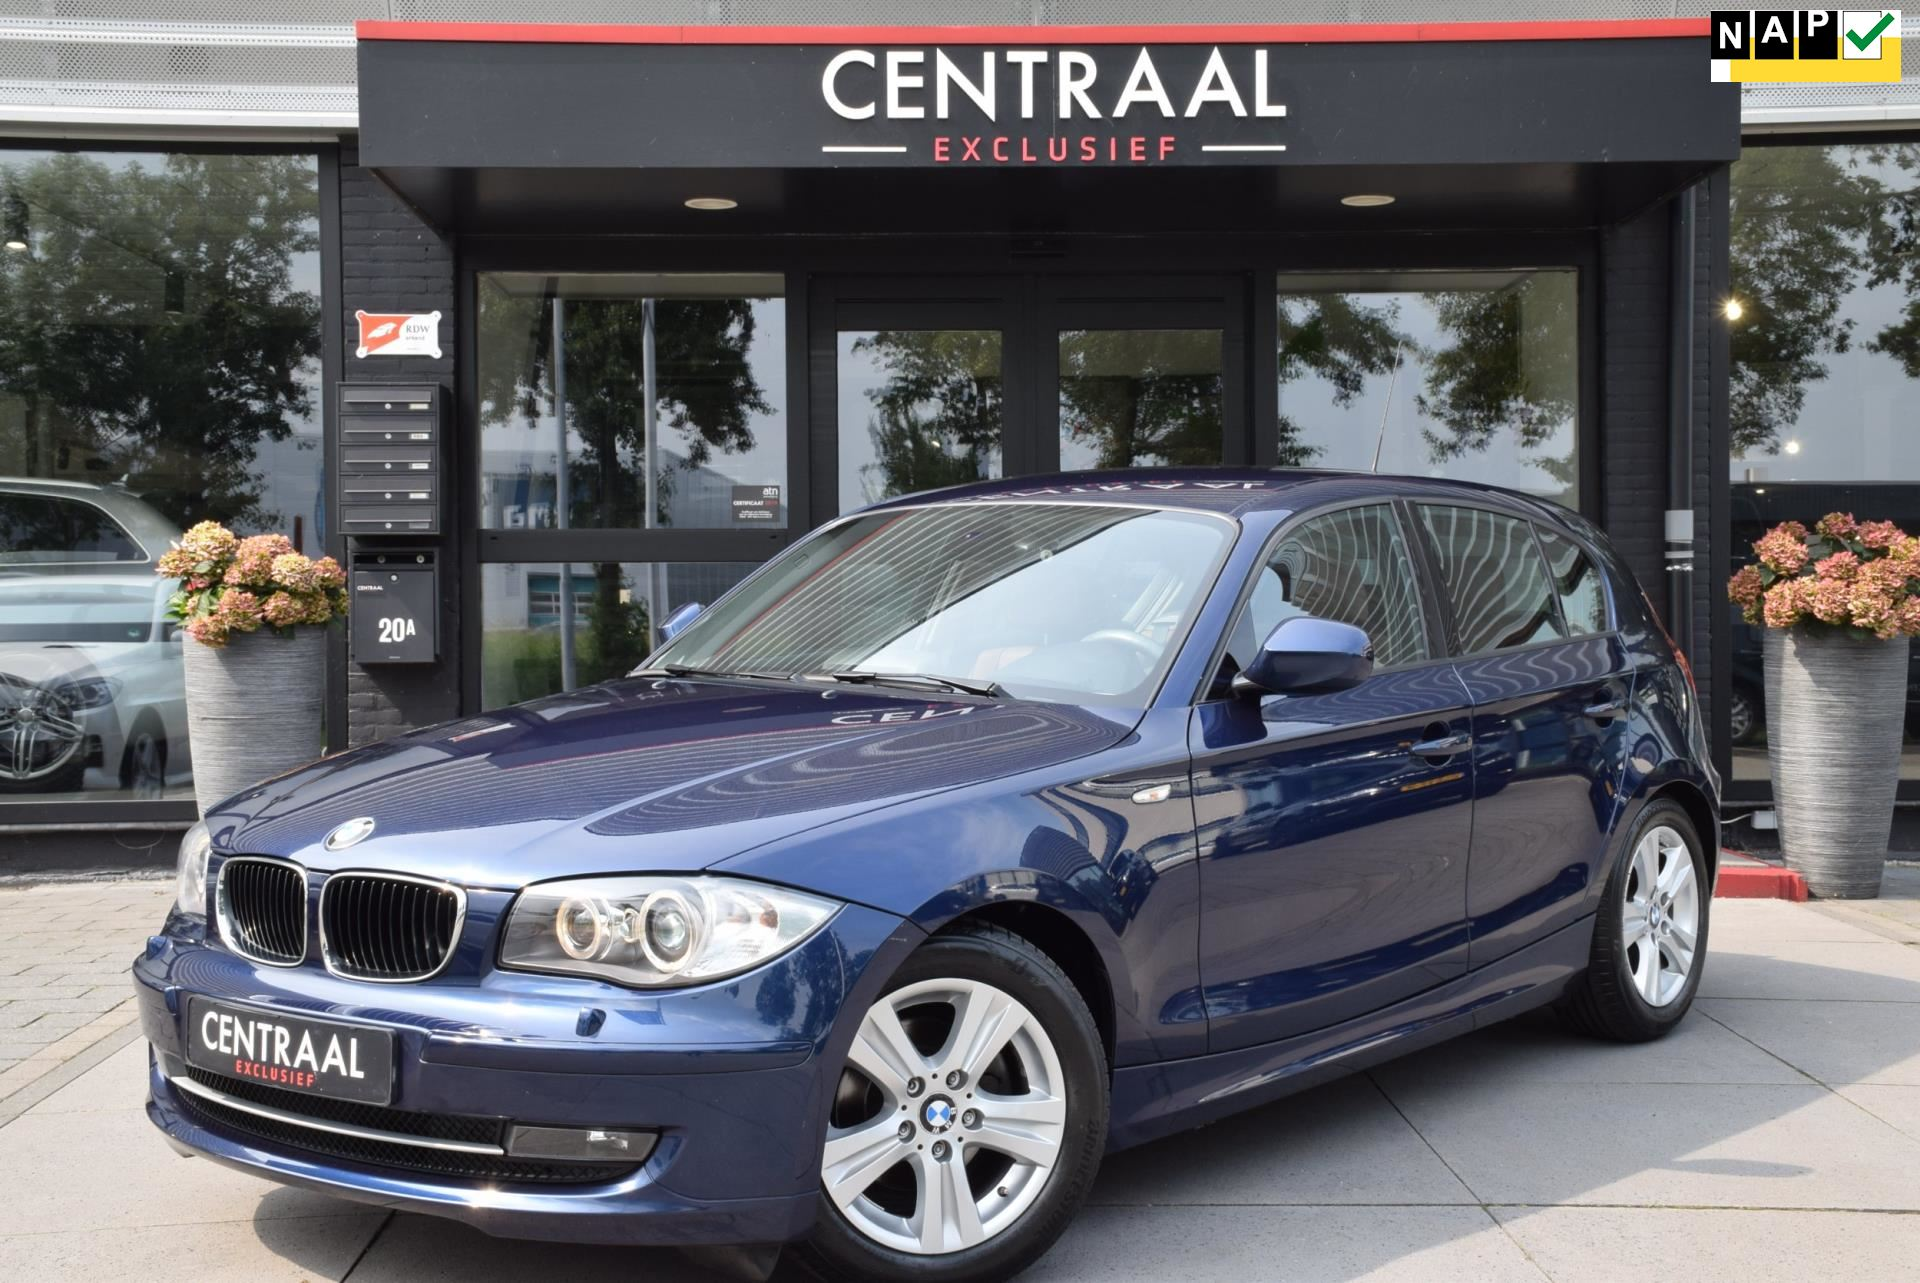 BMW 1-serie occasion - Centraal Exclusief B.V.